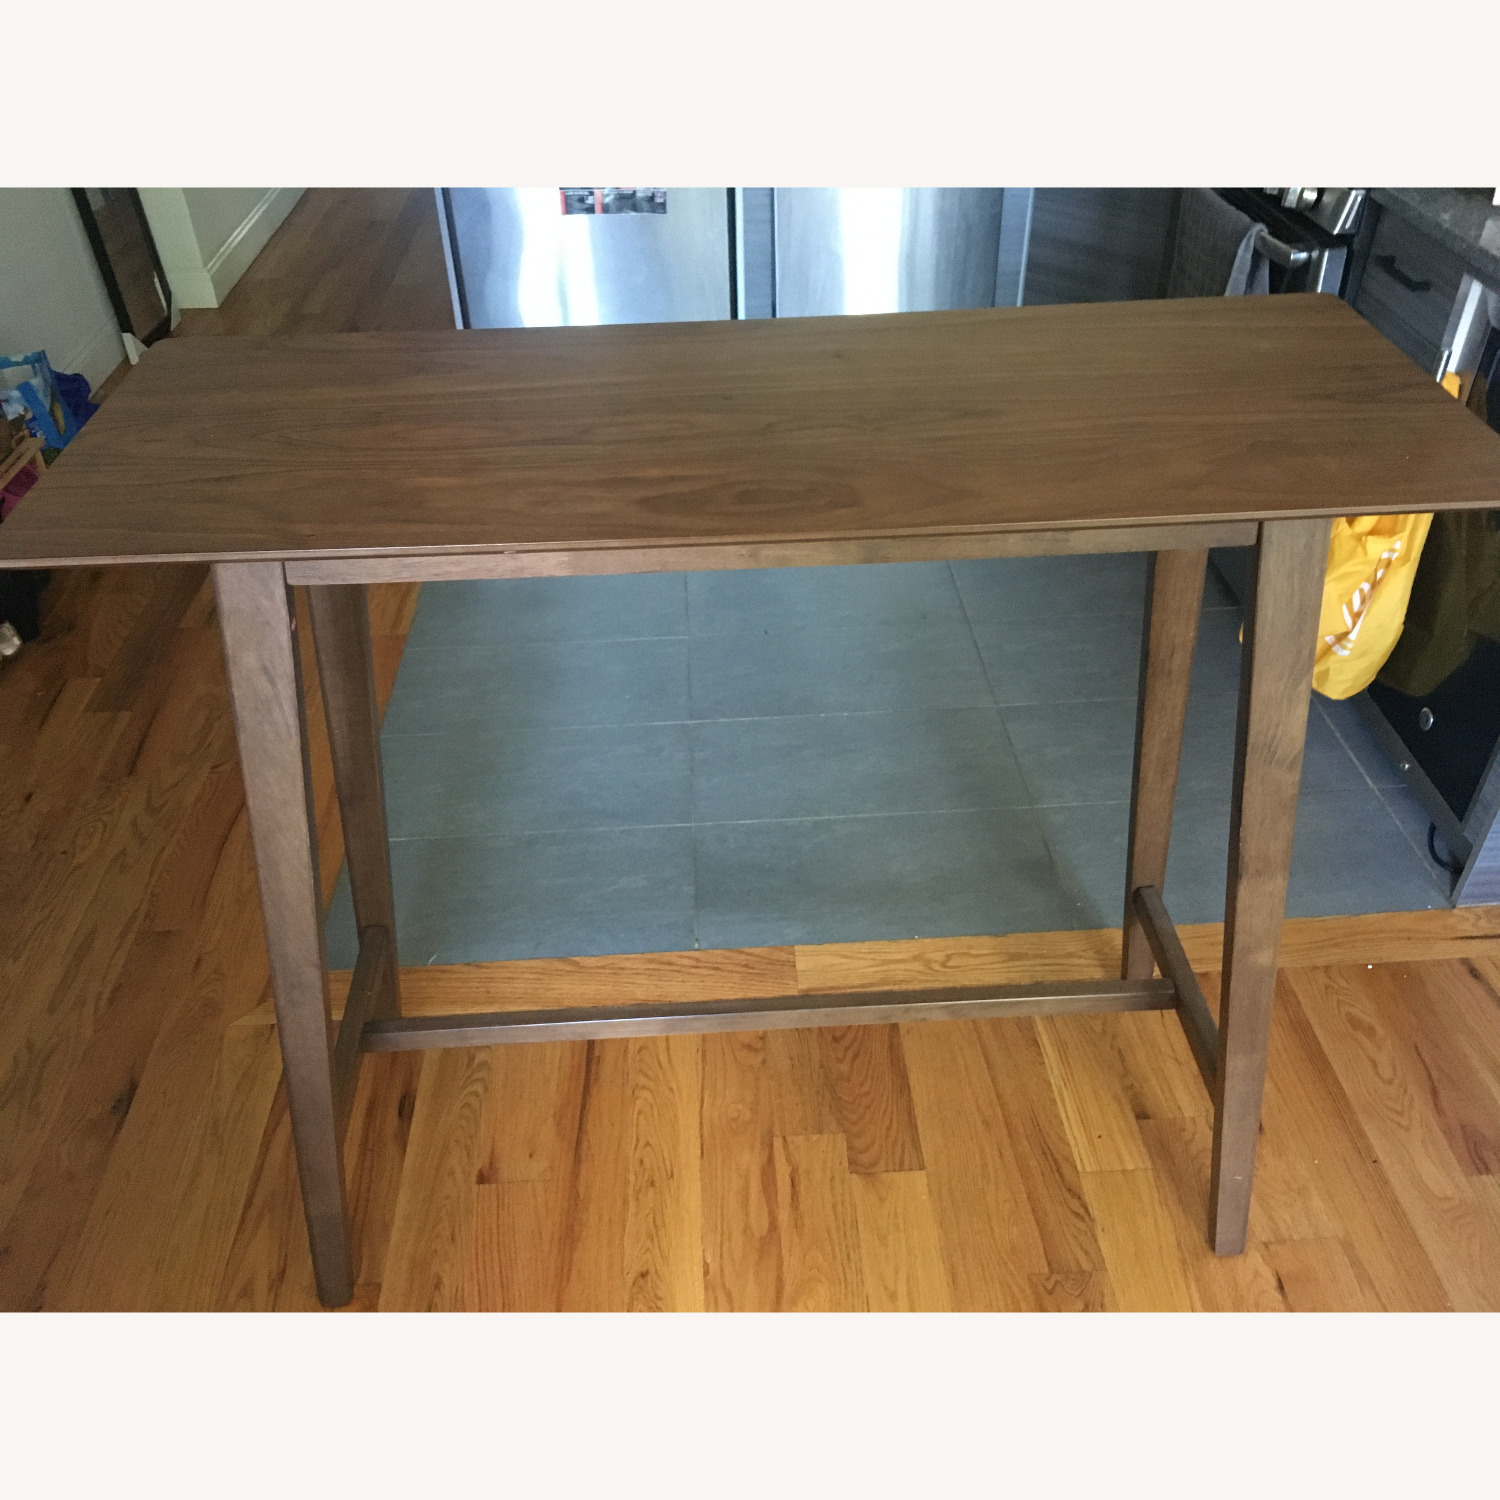 Target Mid-century style High Table - image-1